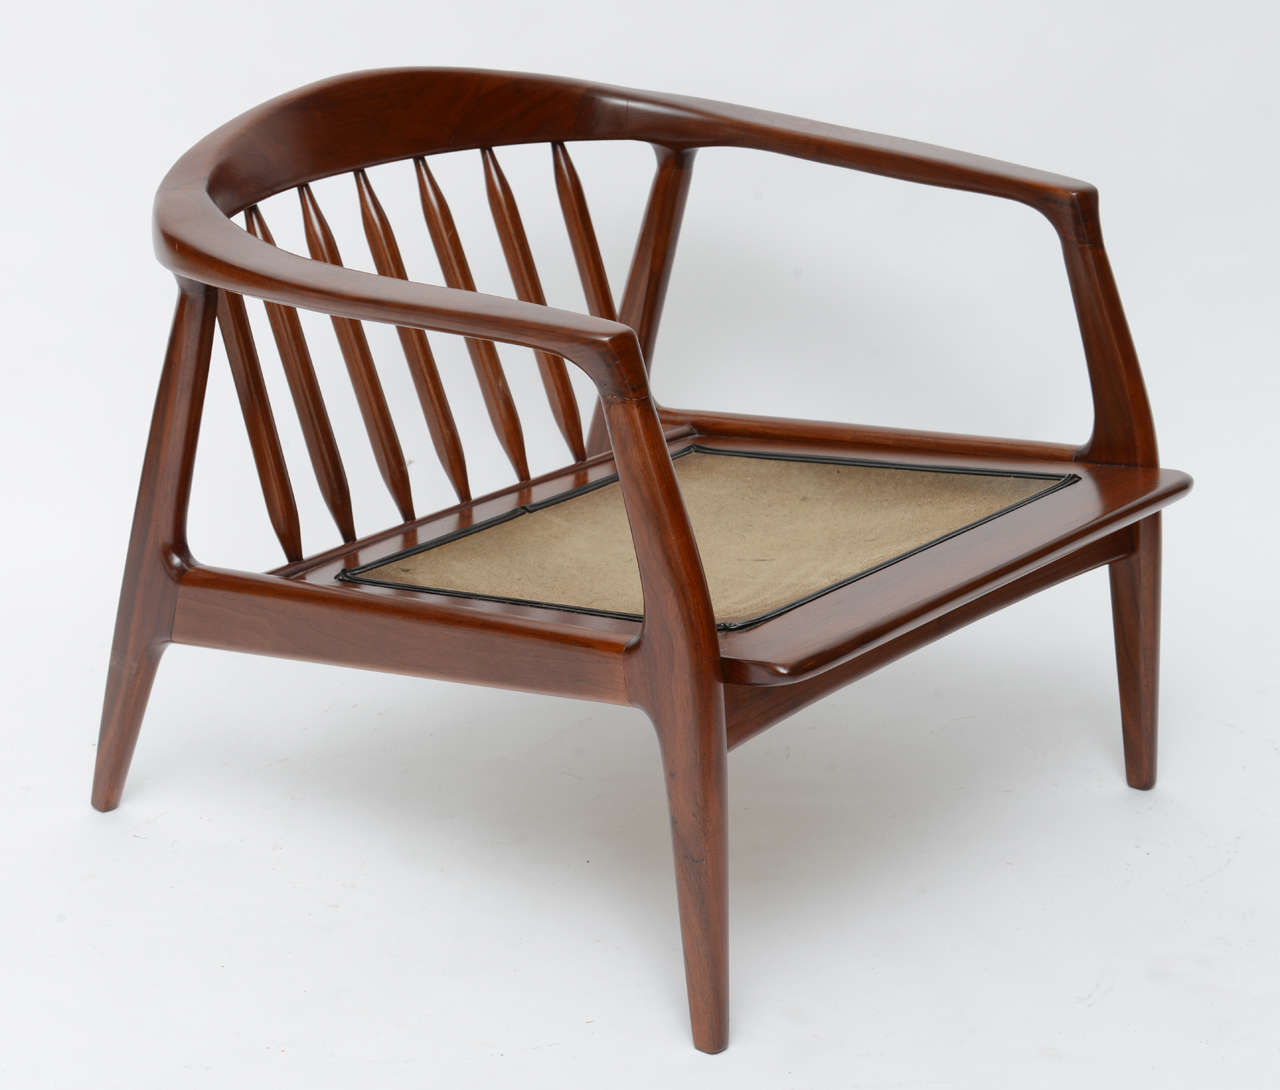 Spindle Arm Chair Milo Baughman Wood Spindle Arm Chair At 1stdibs